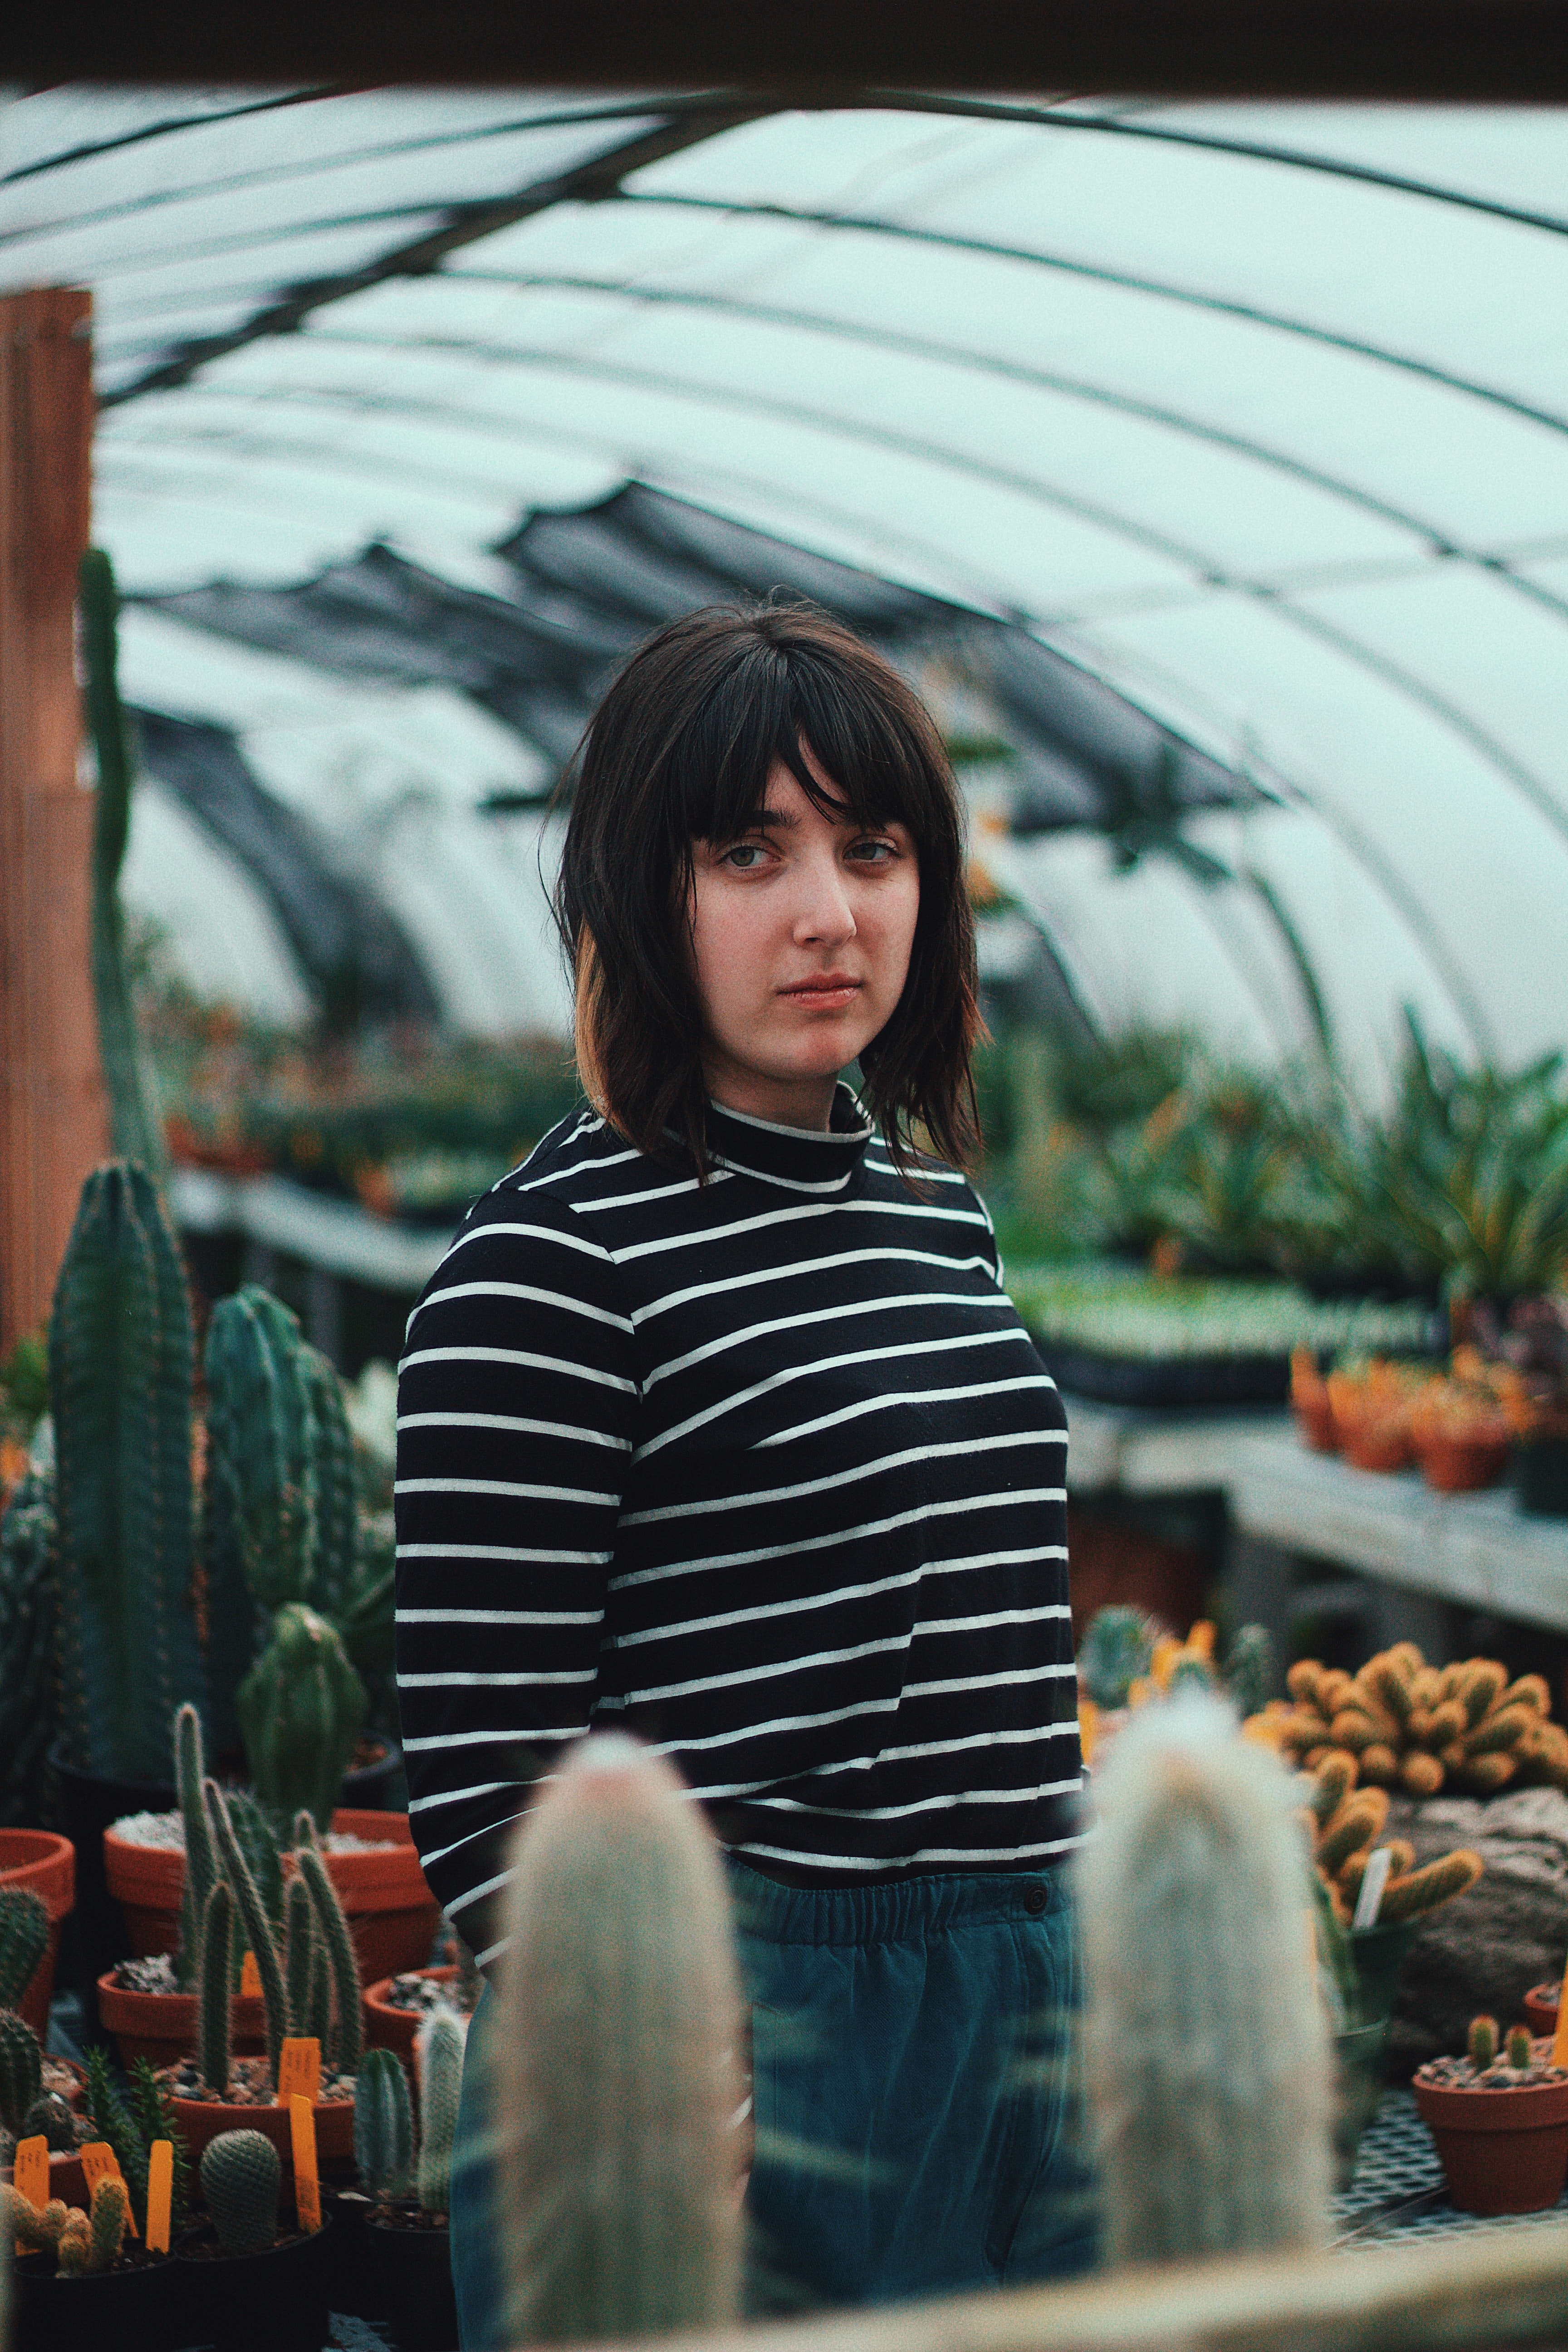 Serious woman standing alone in a greenhouse with succulents